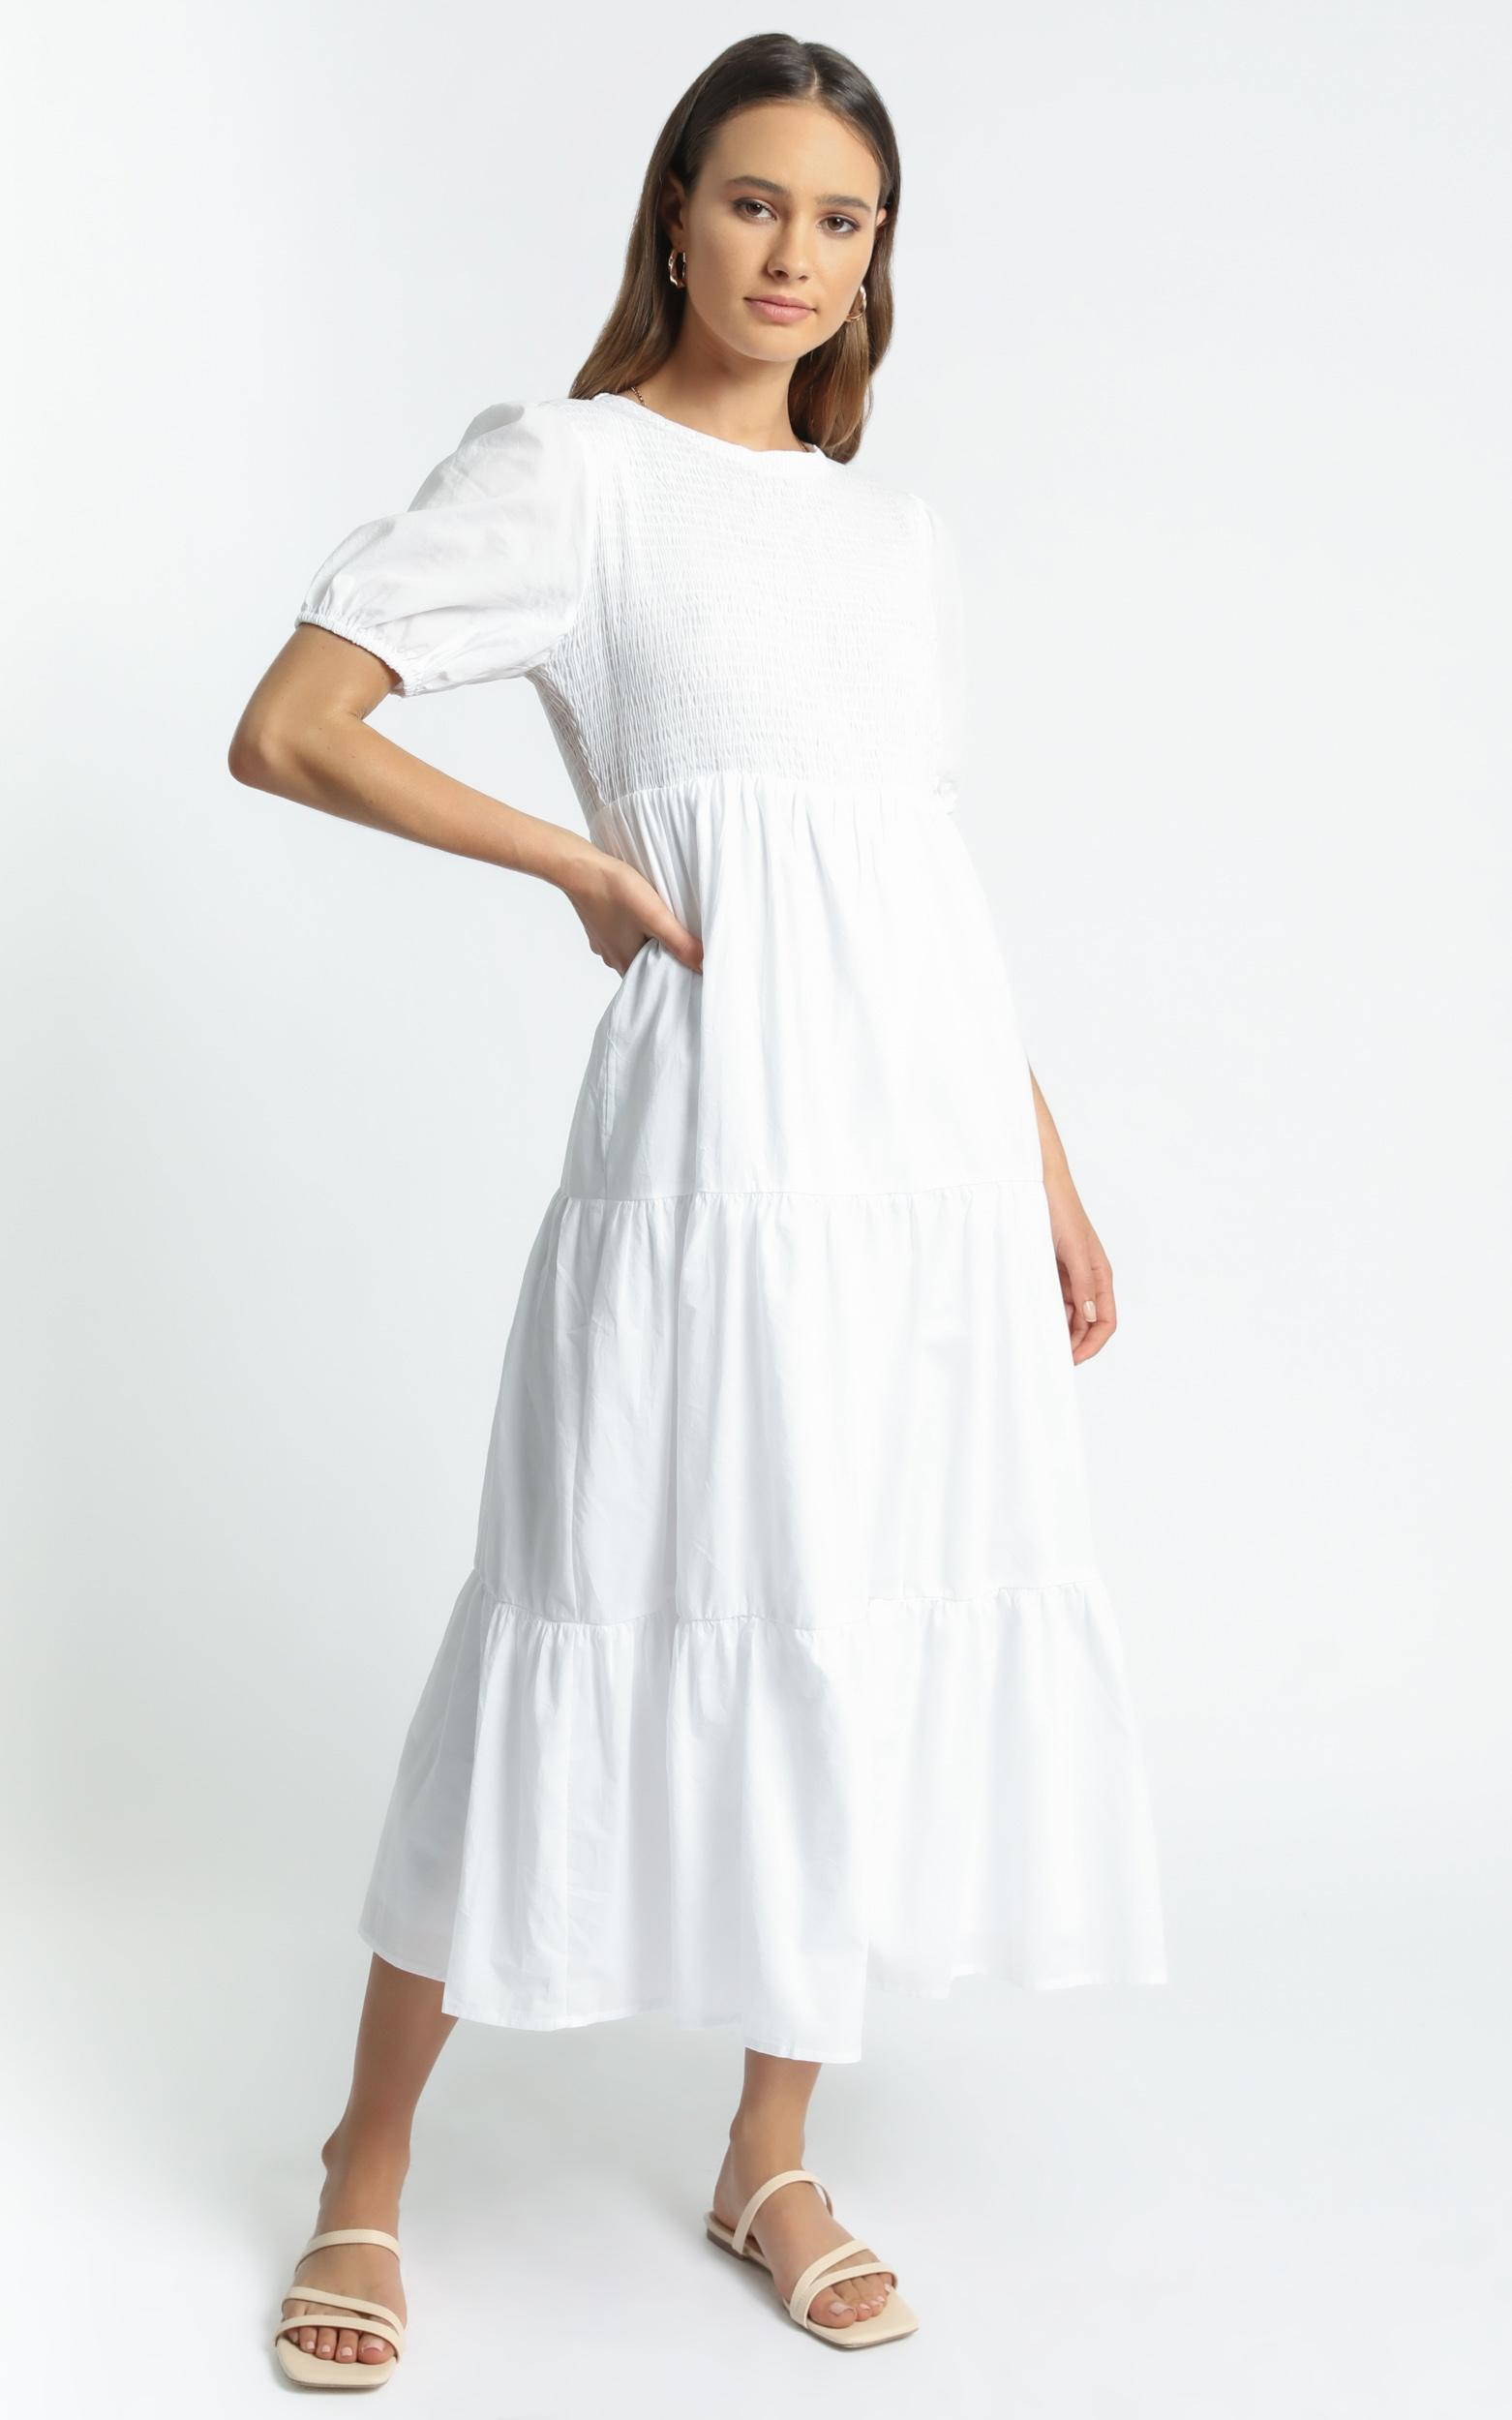 Lorrie Dress in White - 6 (XS), White, hi-res image number null